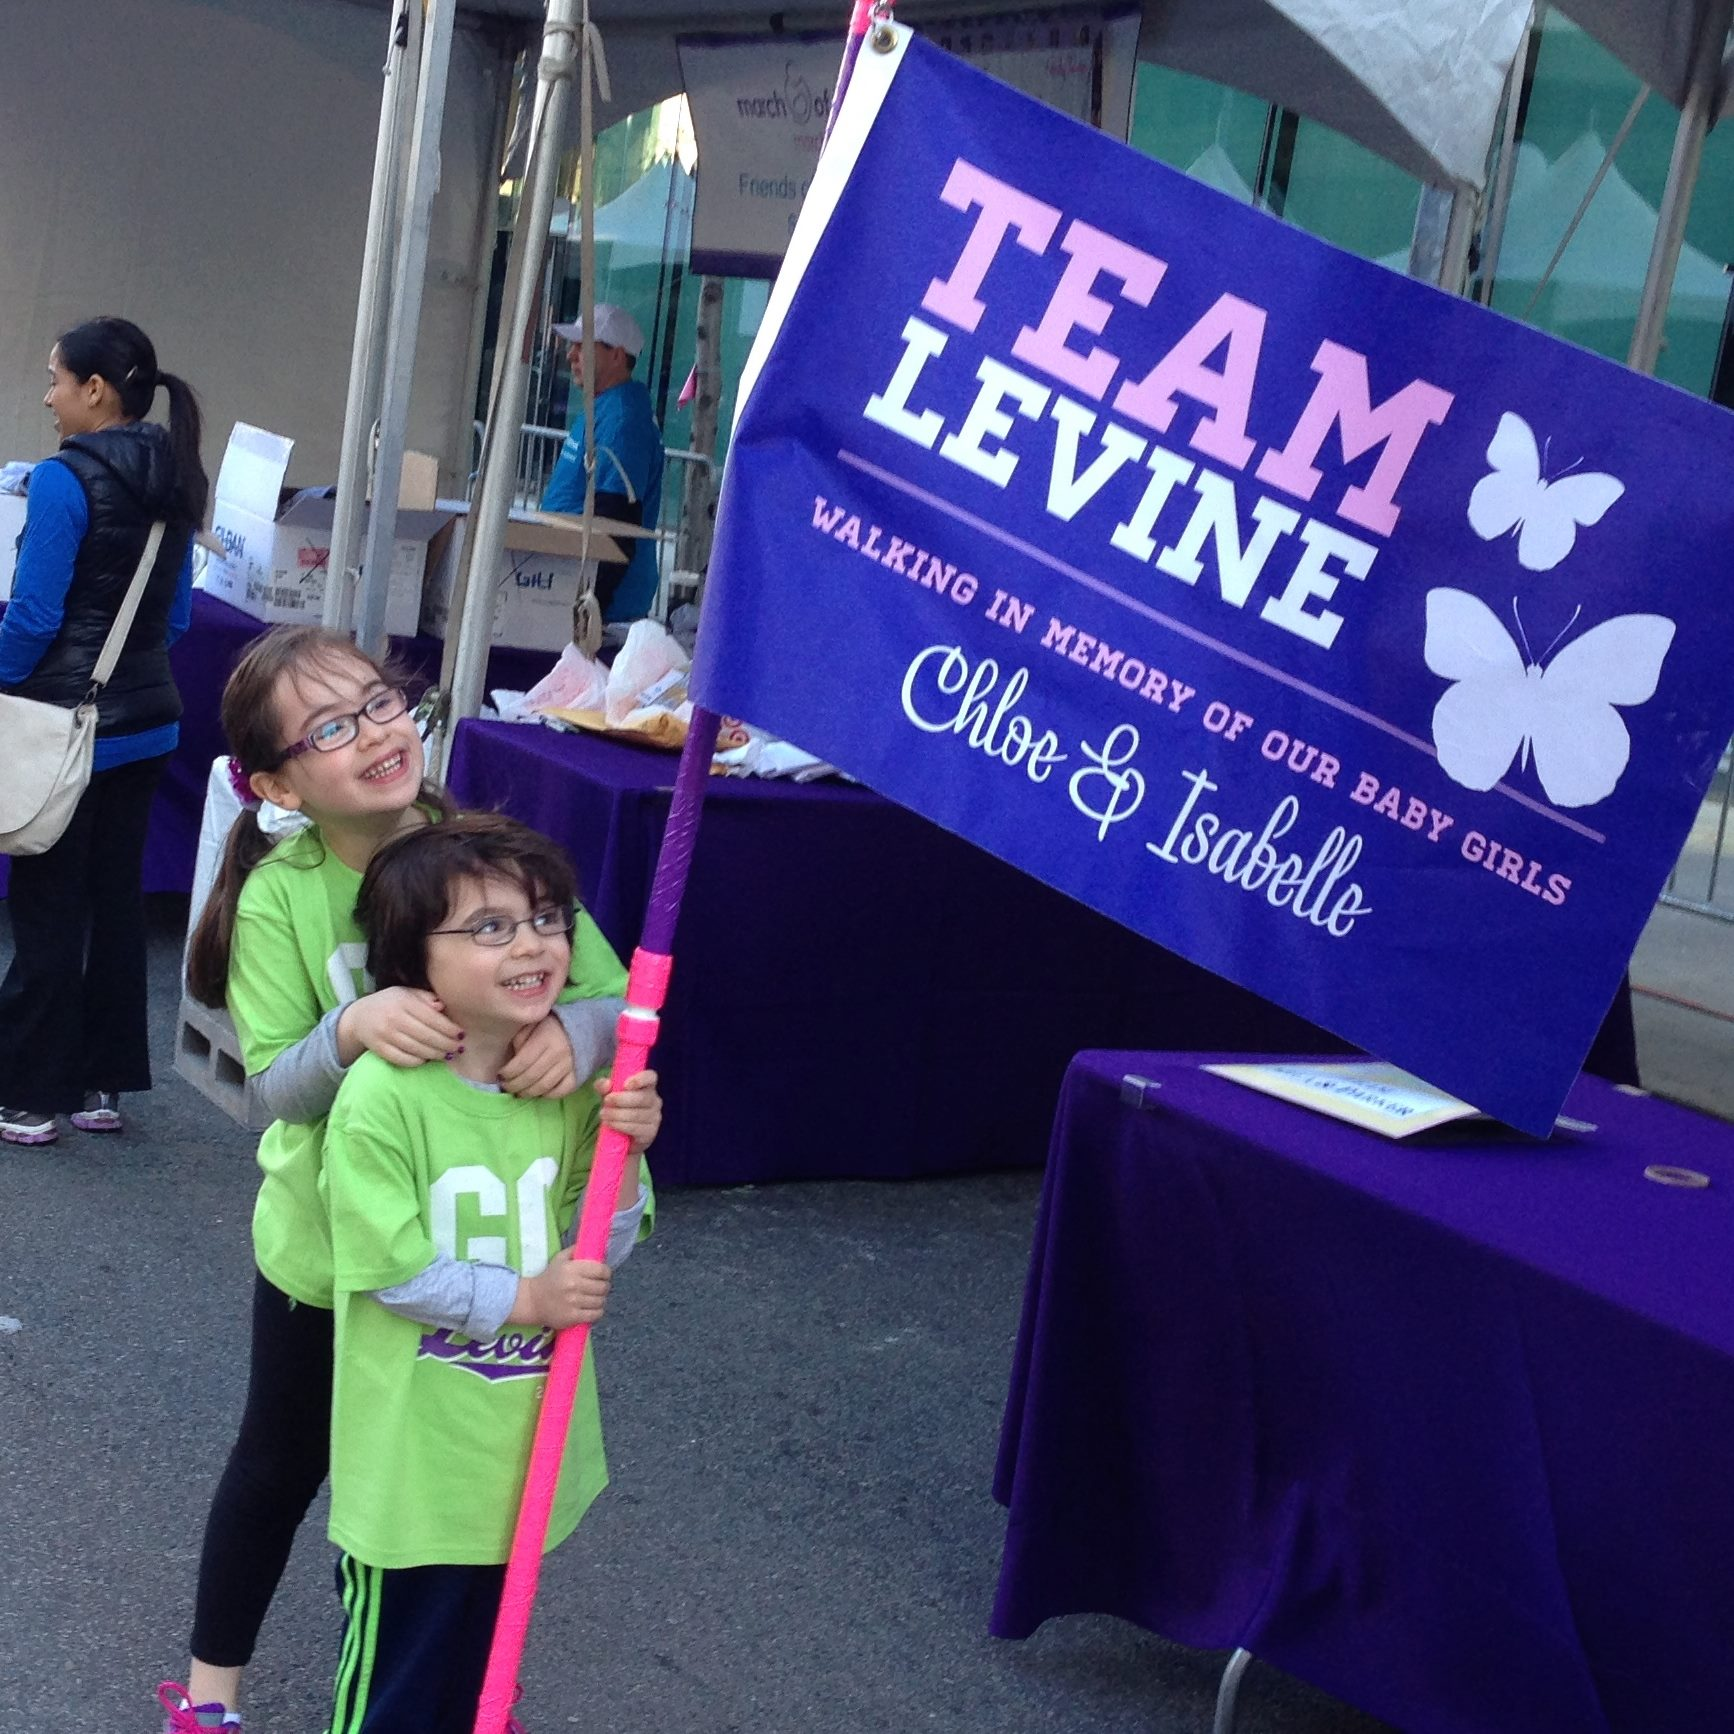 olivia-and-julian-levine-at-the-2015-march-for-babies-walk_16295107564_o.jpg